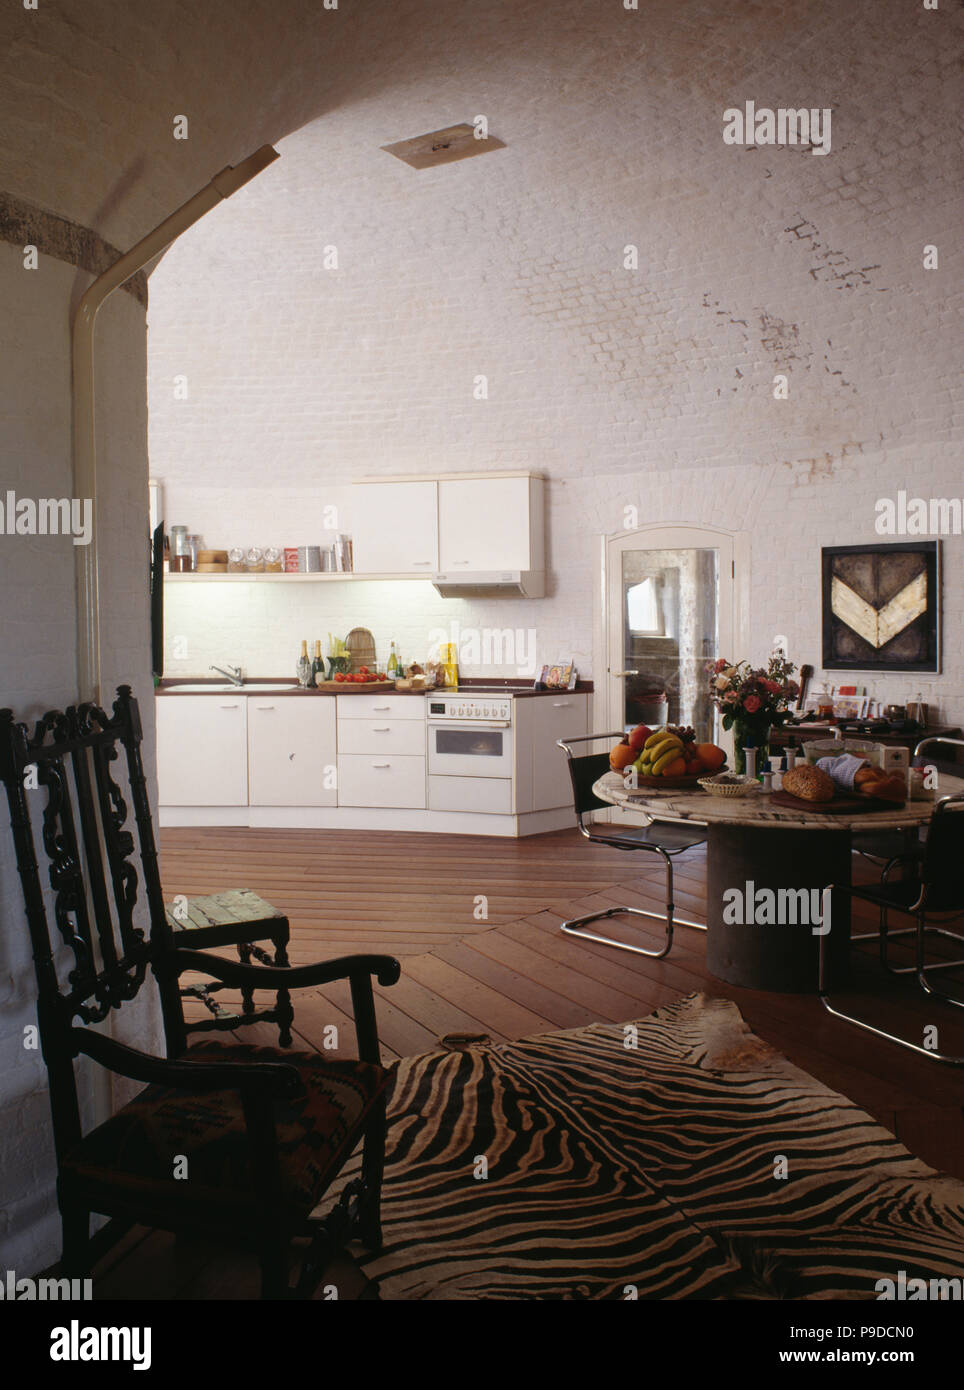 Jacobean chair and old tigerskin rug in dining area of modern kitchen in converted Martello Tower - Stock Image